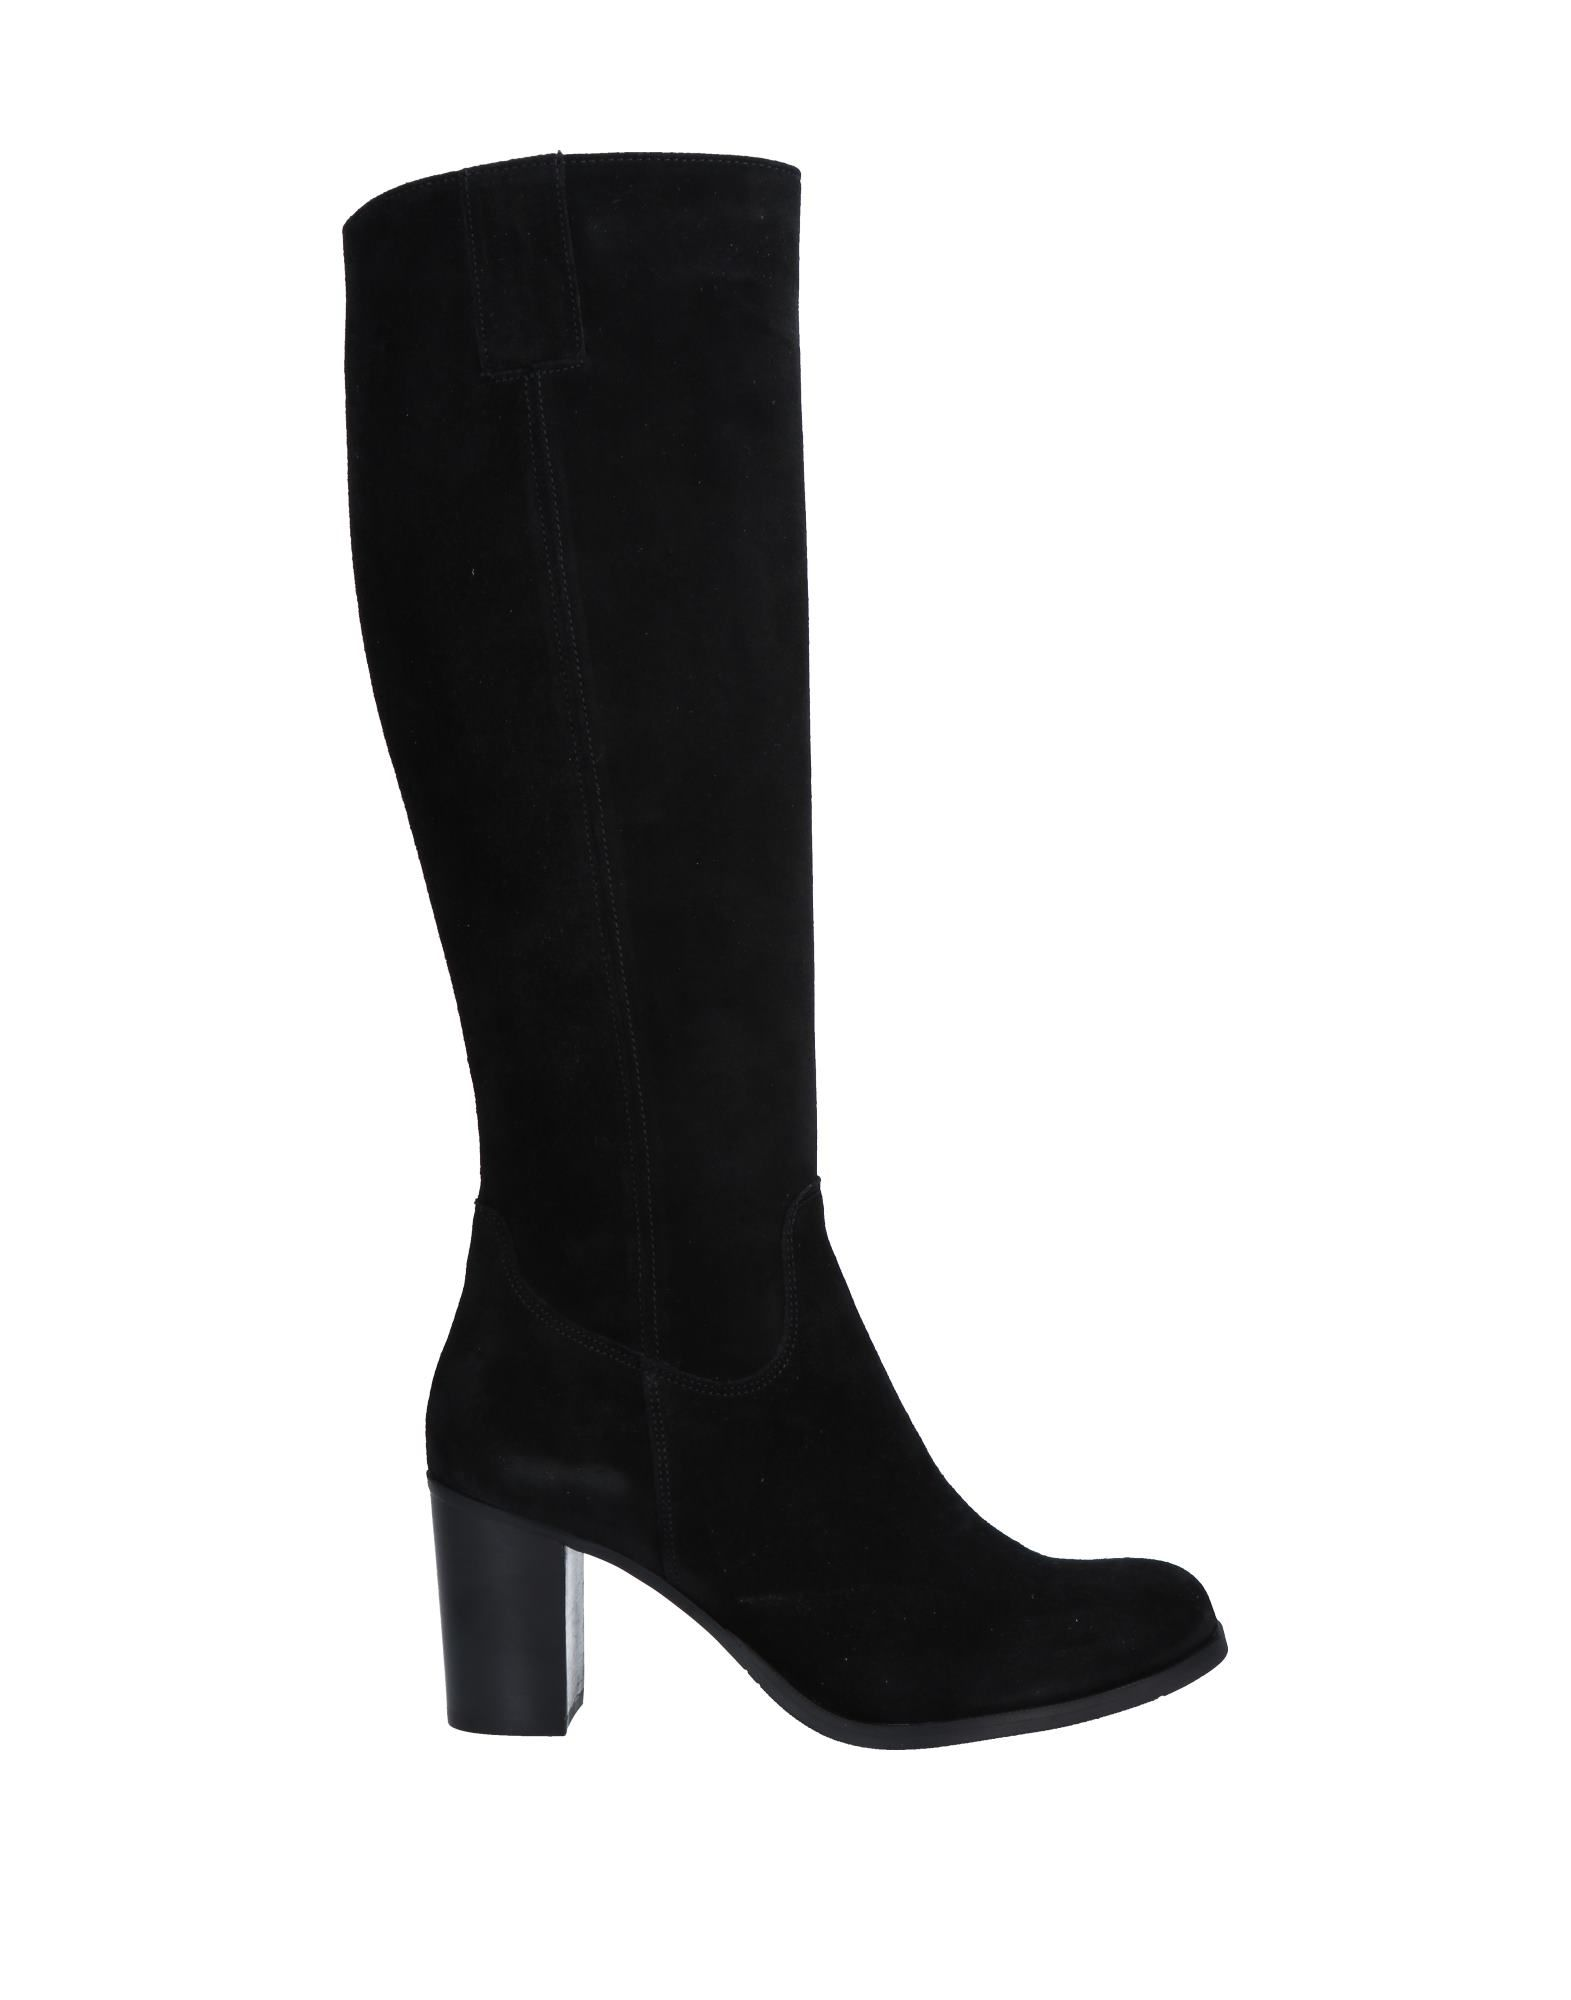 MELLOW YELLOW Boots in Black